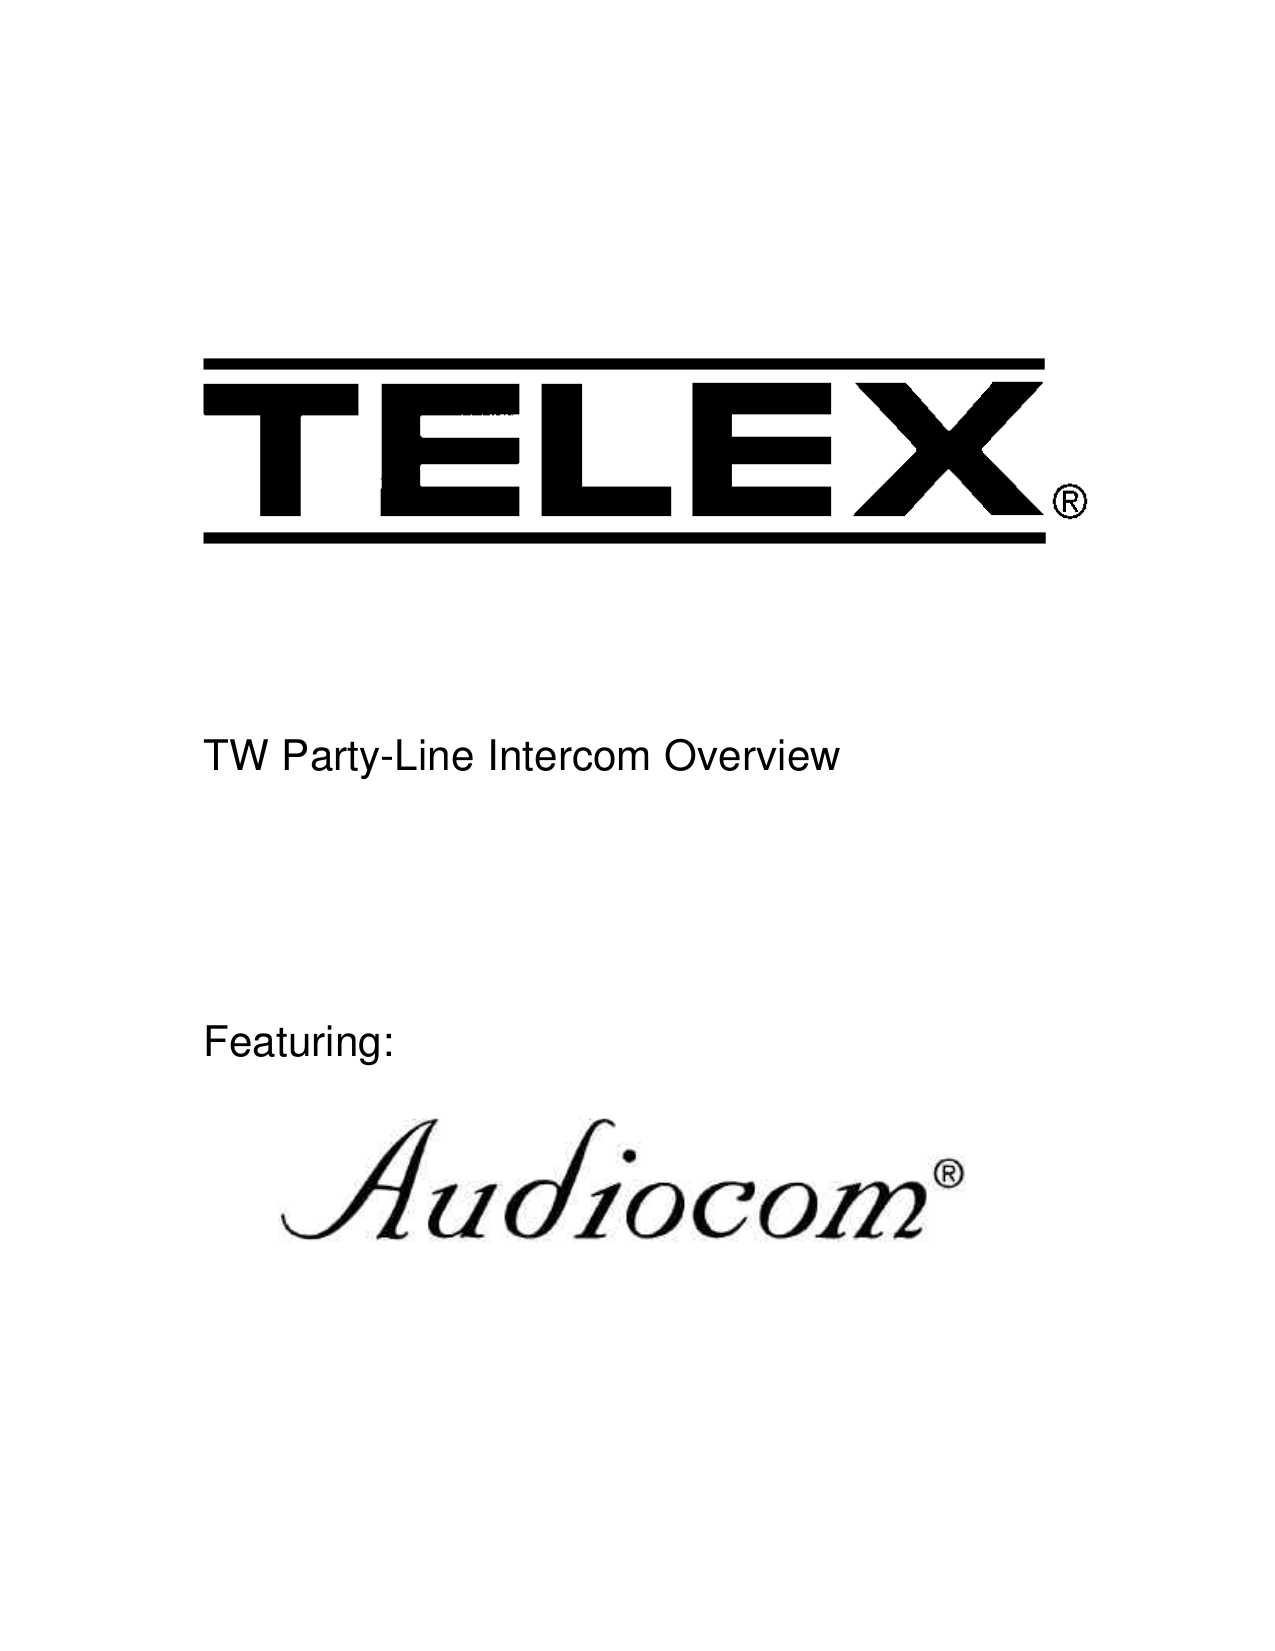 Famous telex wiring diagram xlr to clear com ideas electrical excellent telex wiring diagram xlr to clear com gallery the best swarovskicordoba Gallery